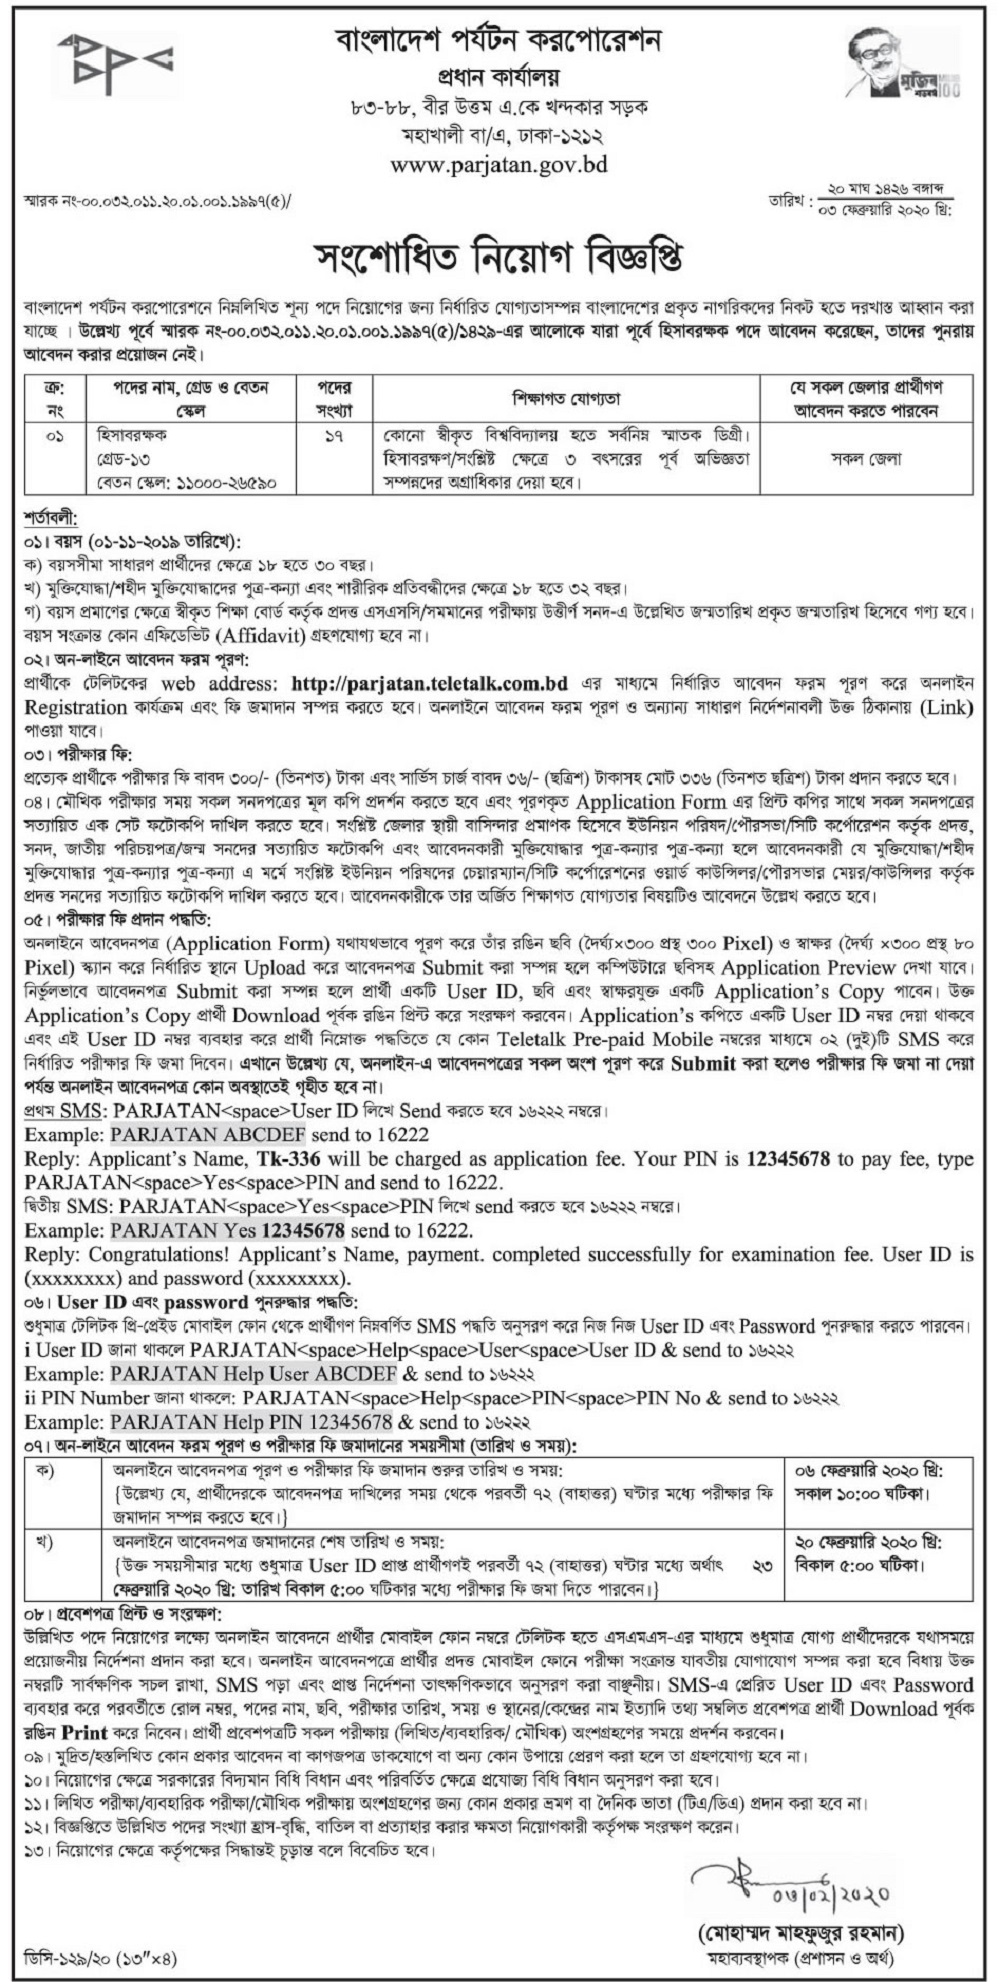 Bangladesh Parjatan Corporation Job Circular 2020